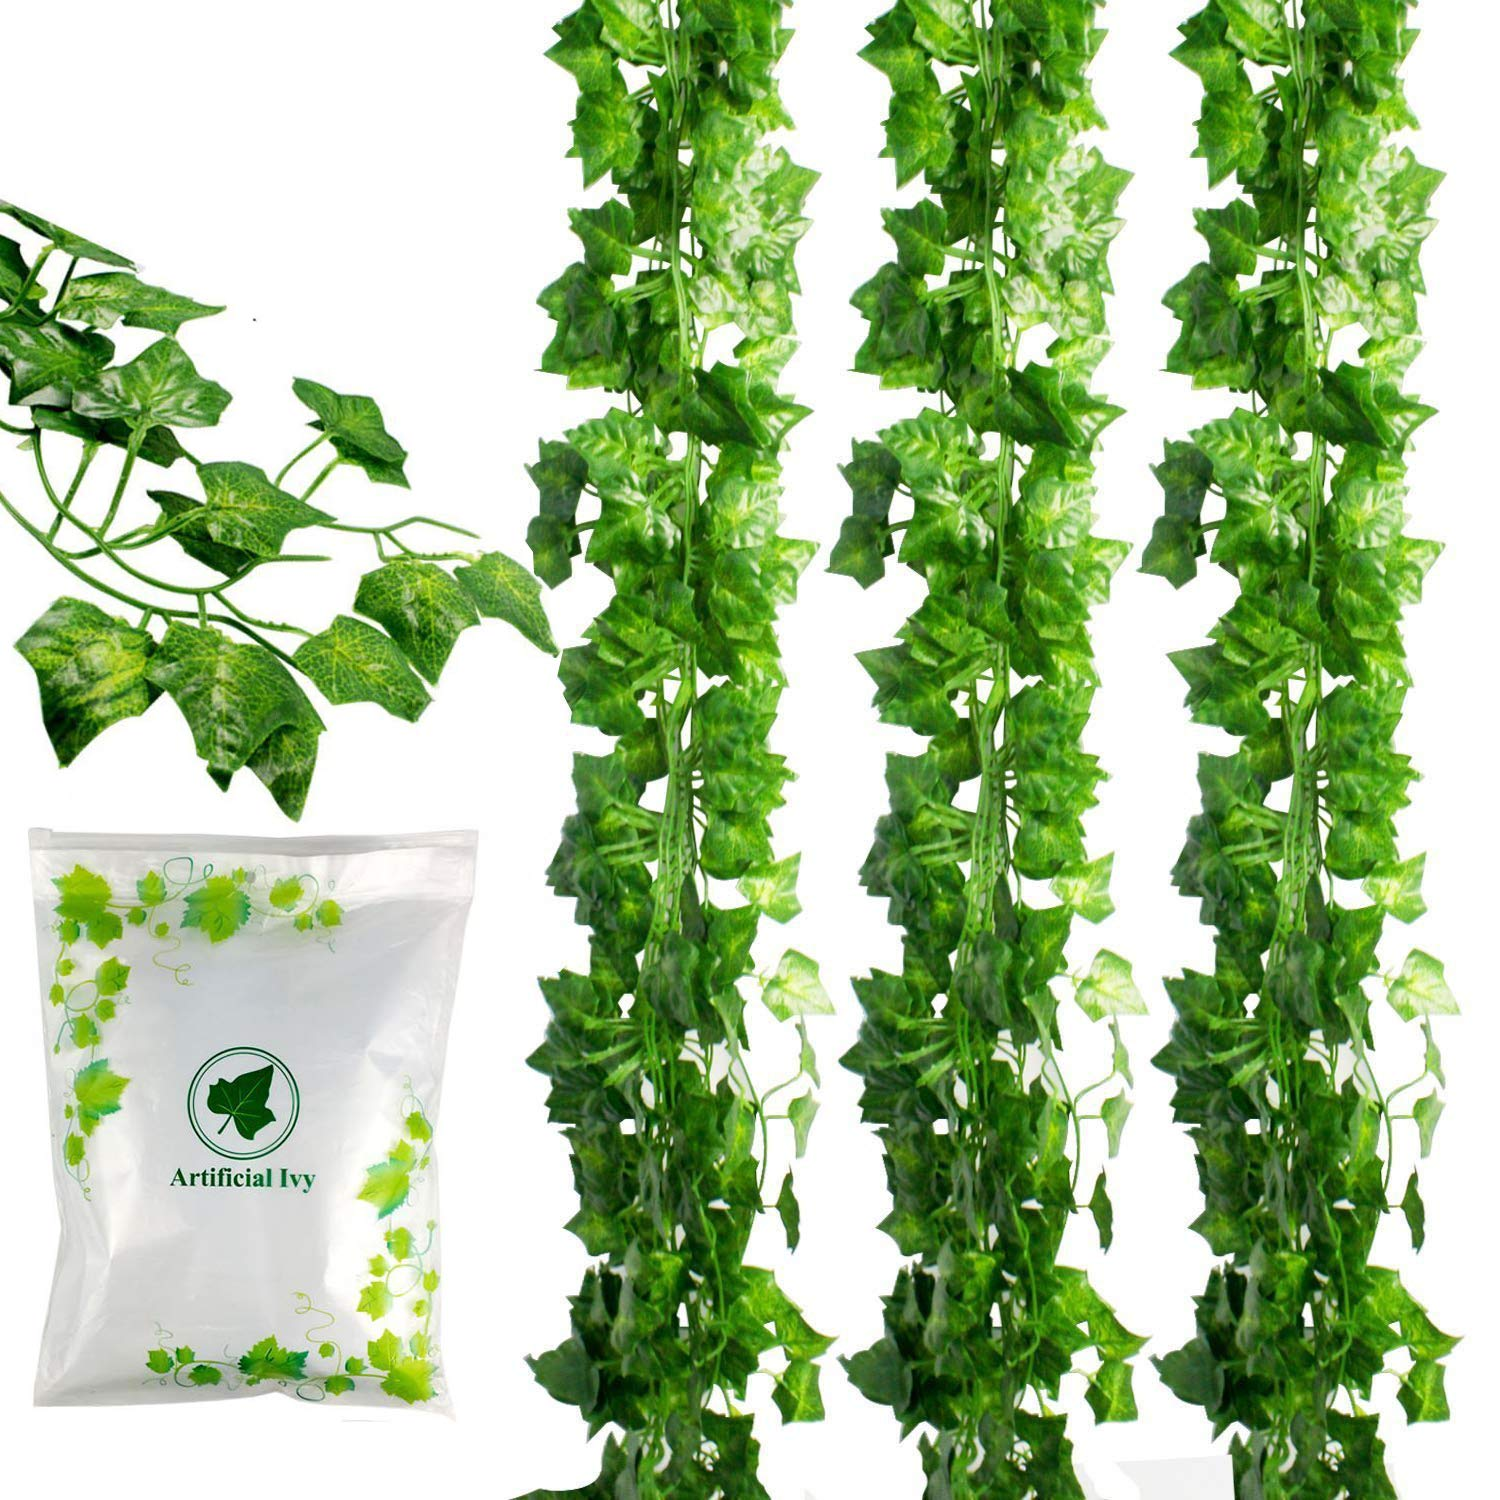 JPSOR 24 Pack (79 inch Each) Fake Ivy Artificial Ivy Leaves Greenery Garlands Hanging for Wedding Party Garden Wall Decoration by JPSOR